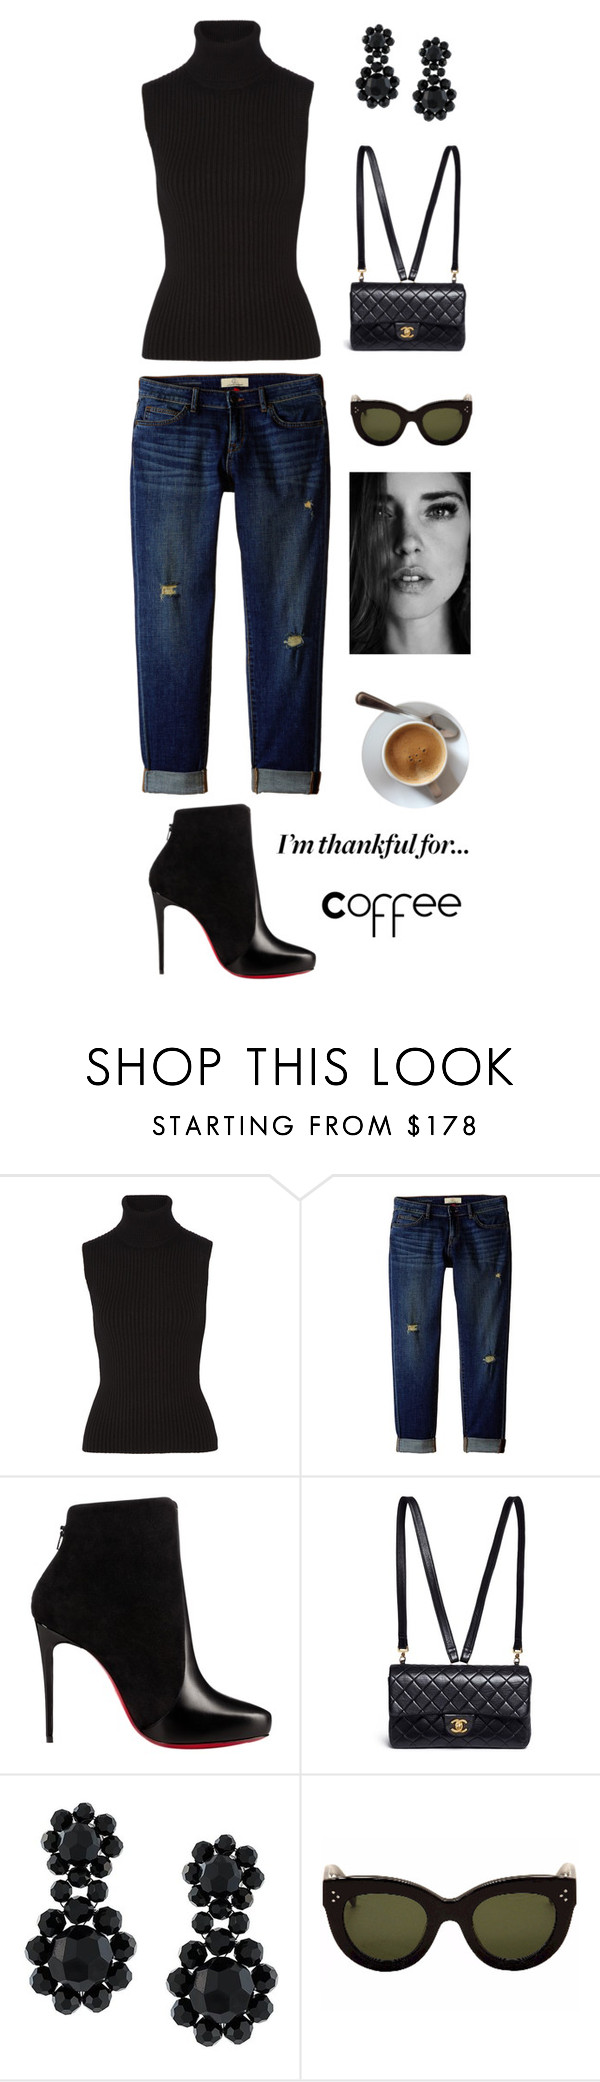 """""""Untitled #331"""" by maylamartha ❤ liked on Polyvore featuring Michael Kors, CJ by Cookie Johnson, Christian Louboutin, Chanel, Simone Rocha, CÉLINE and imthankfulfor"""